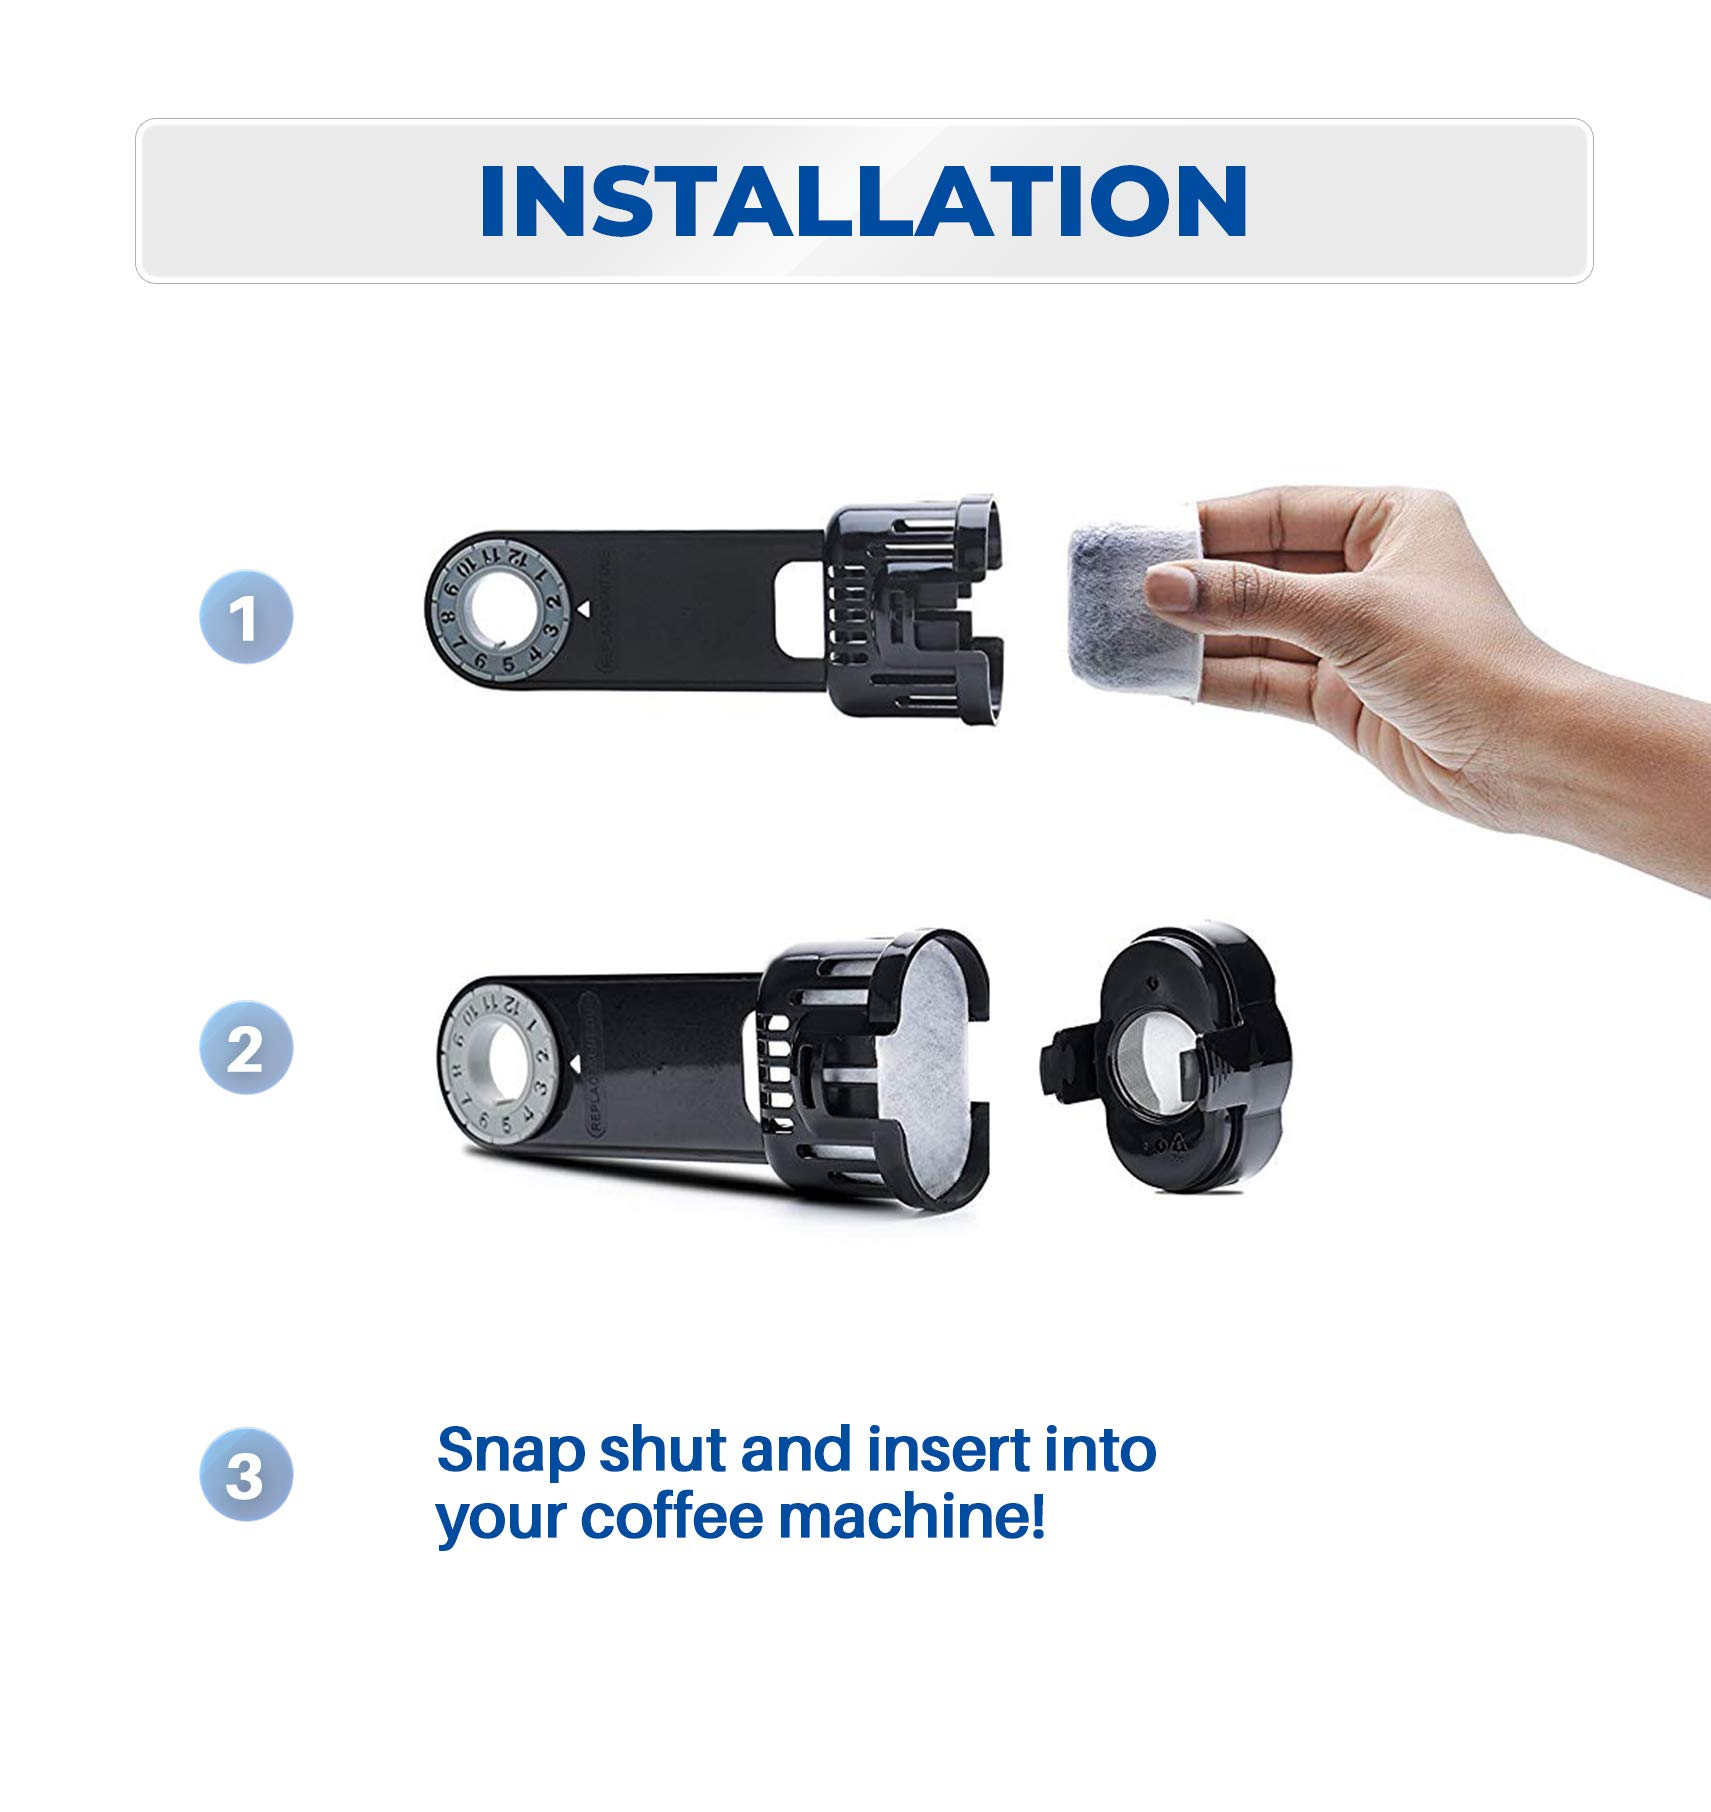 Keurig Starter Kit Replacement for Keurig 1.0 Classic Brewers - Includes Filter Holder And 6-pack of Keurig 1.0 Compatible Water Filters by K&J